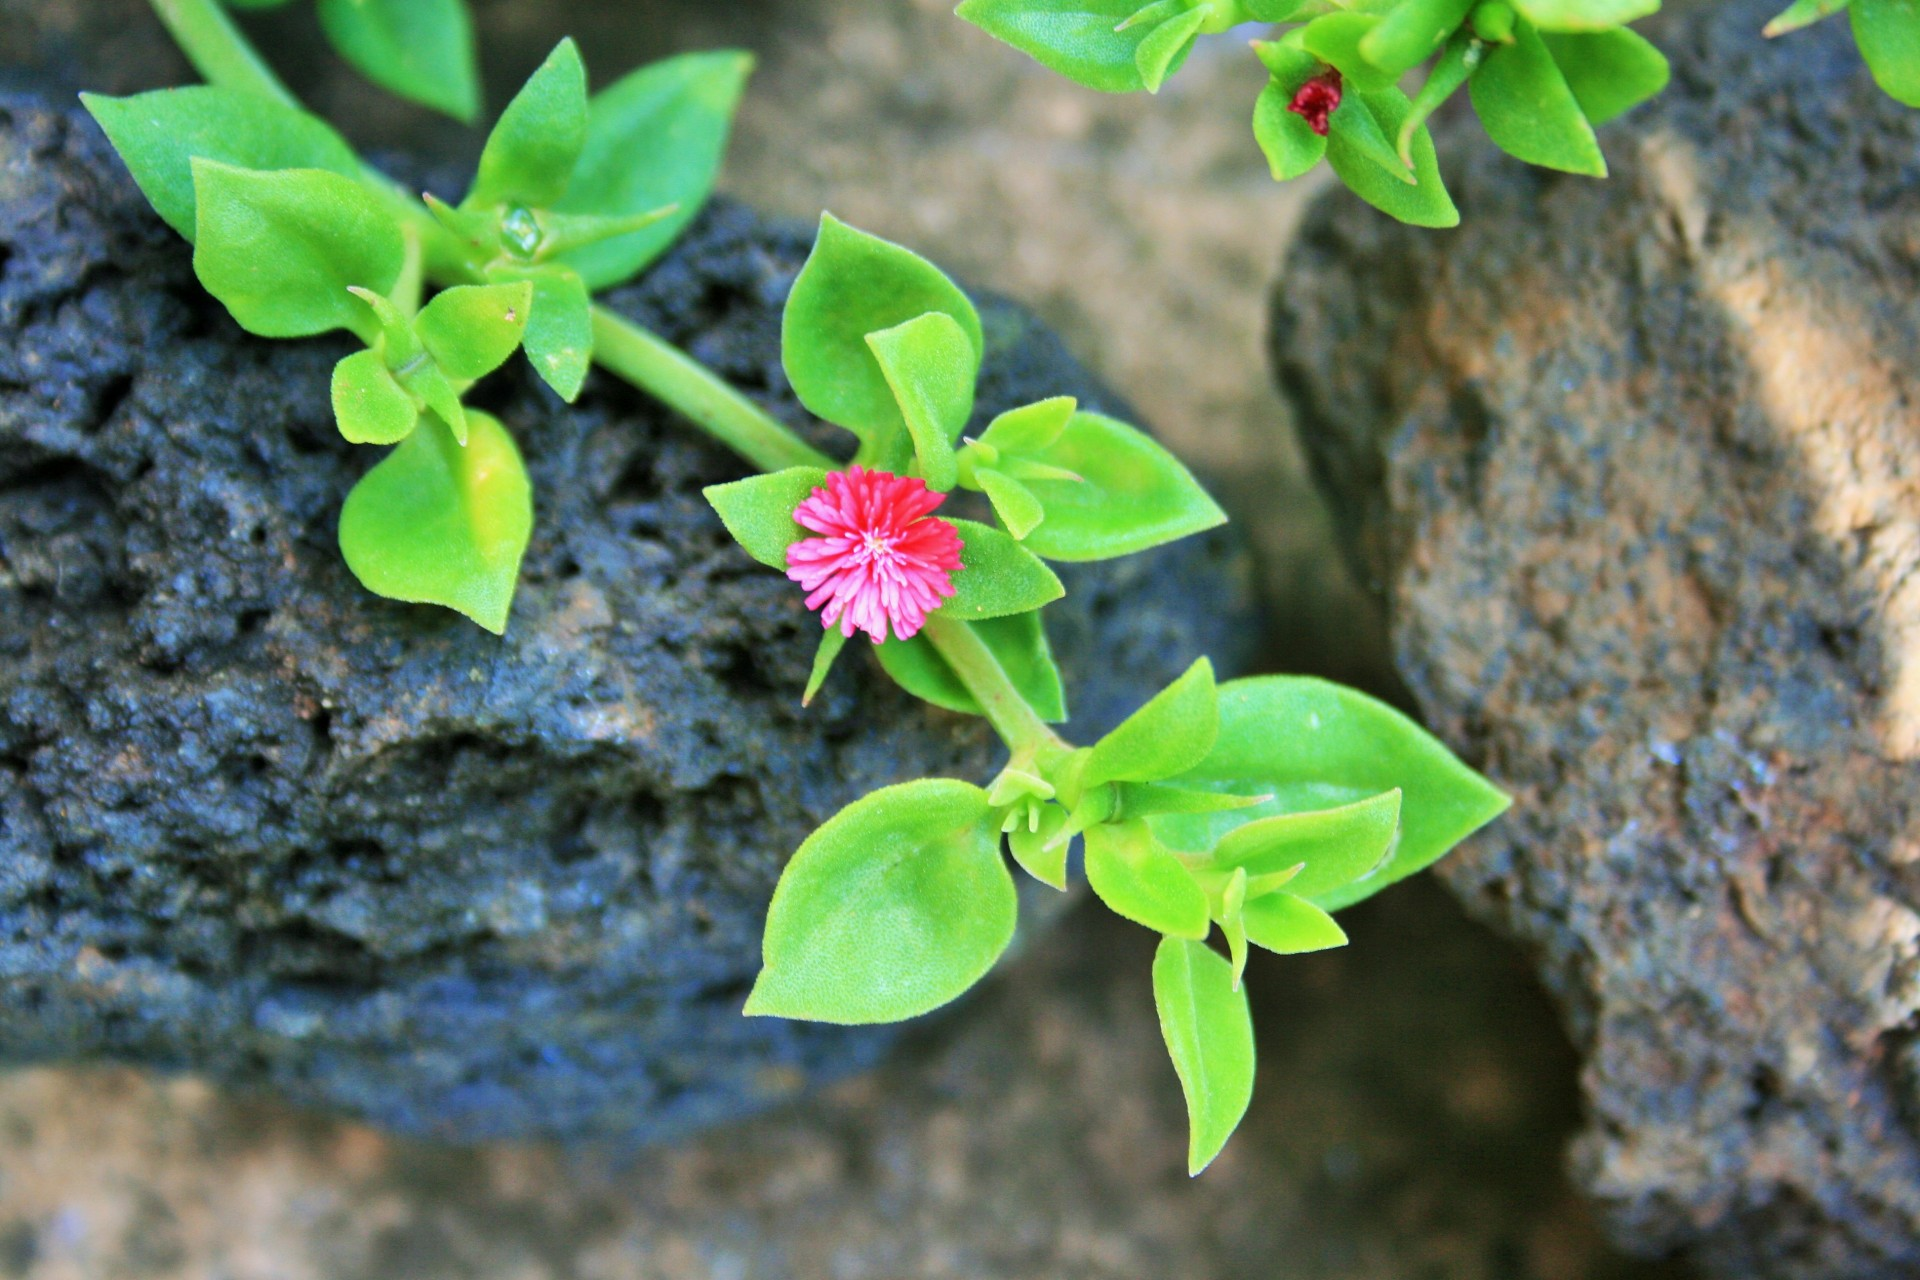 Ground Cover Succulent Flower Pink Heartleaf Free Image From